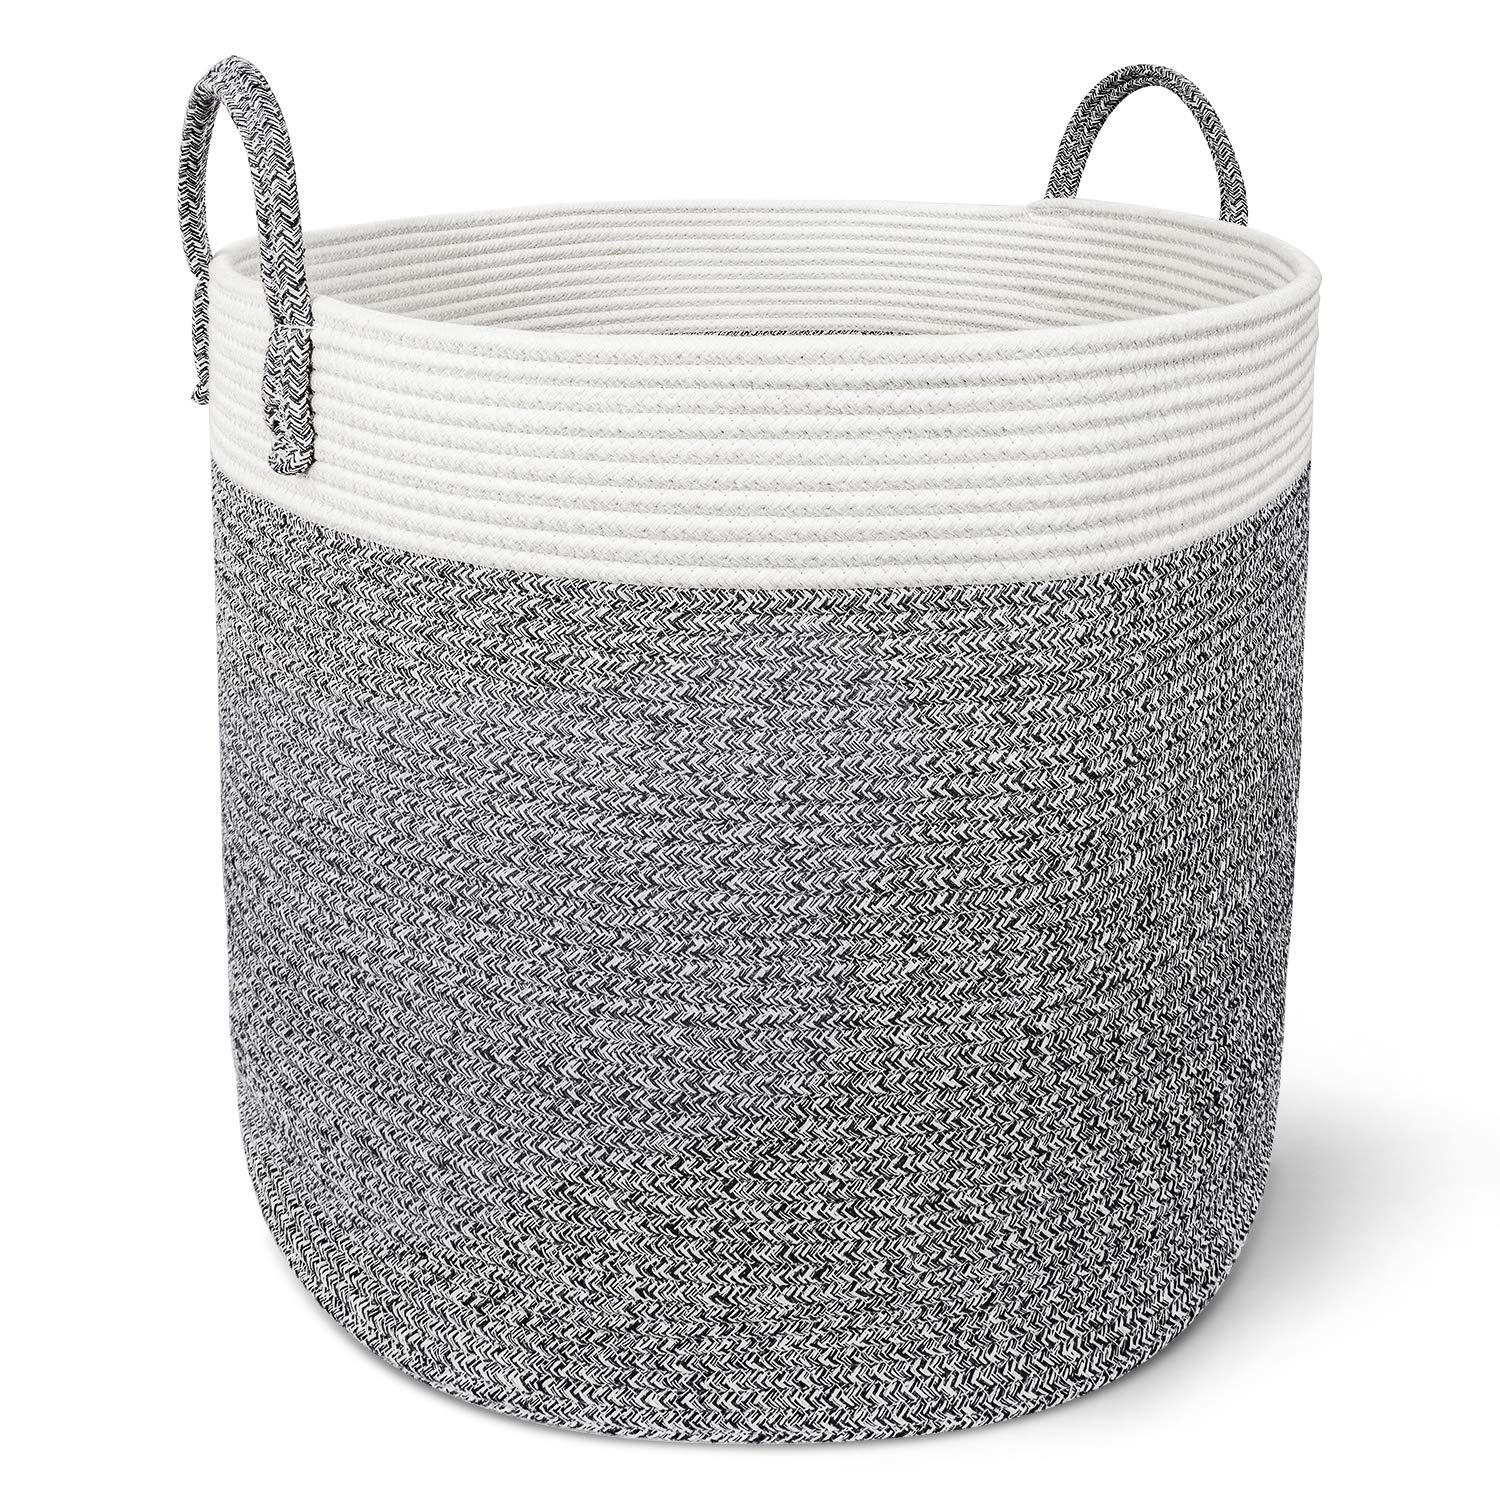 X-Large Cotton Rope Basket - 18''x18'' Decorative Woven Basket for Laundry, Baby, Blanket, Home Storage Container (Grey) by CherryNow